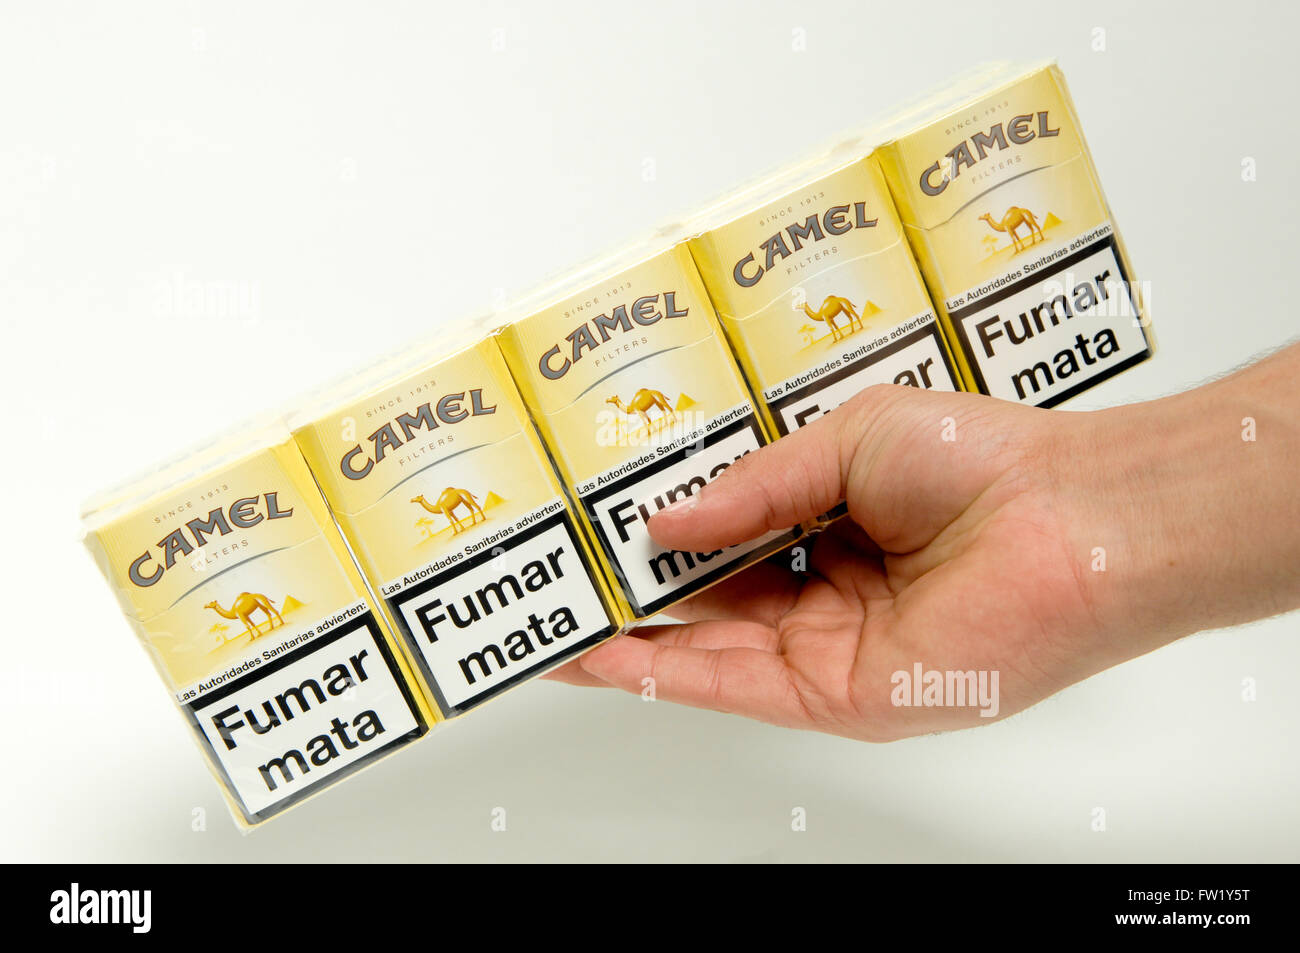 Carton Of Cigarettes High Resolution Stock Photography And Images Alamy